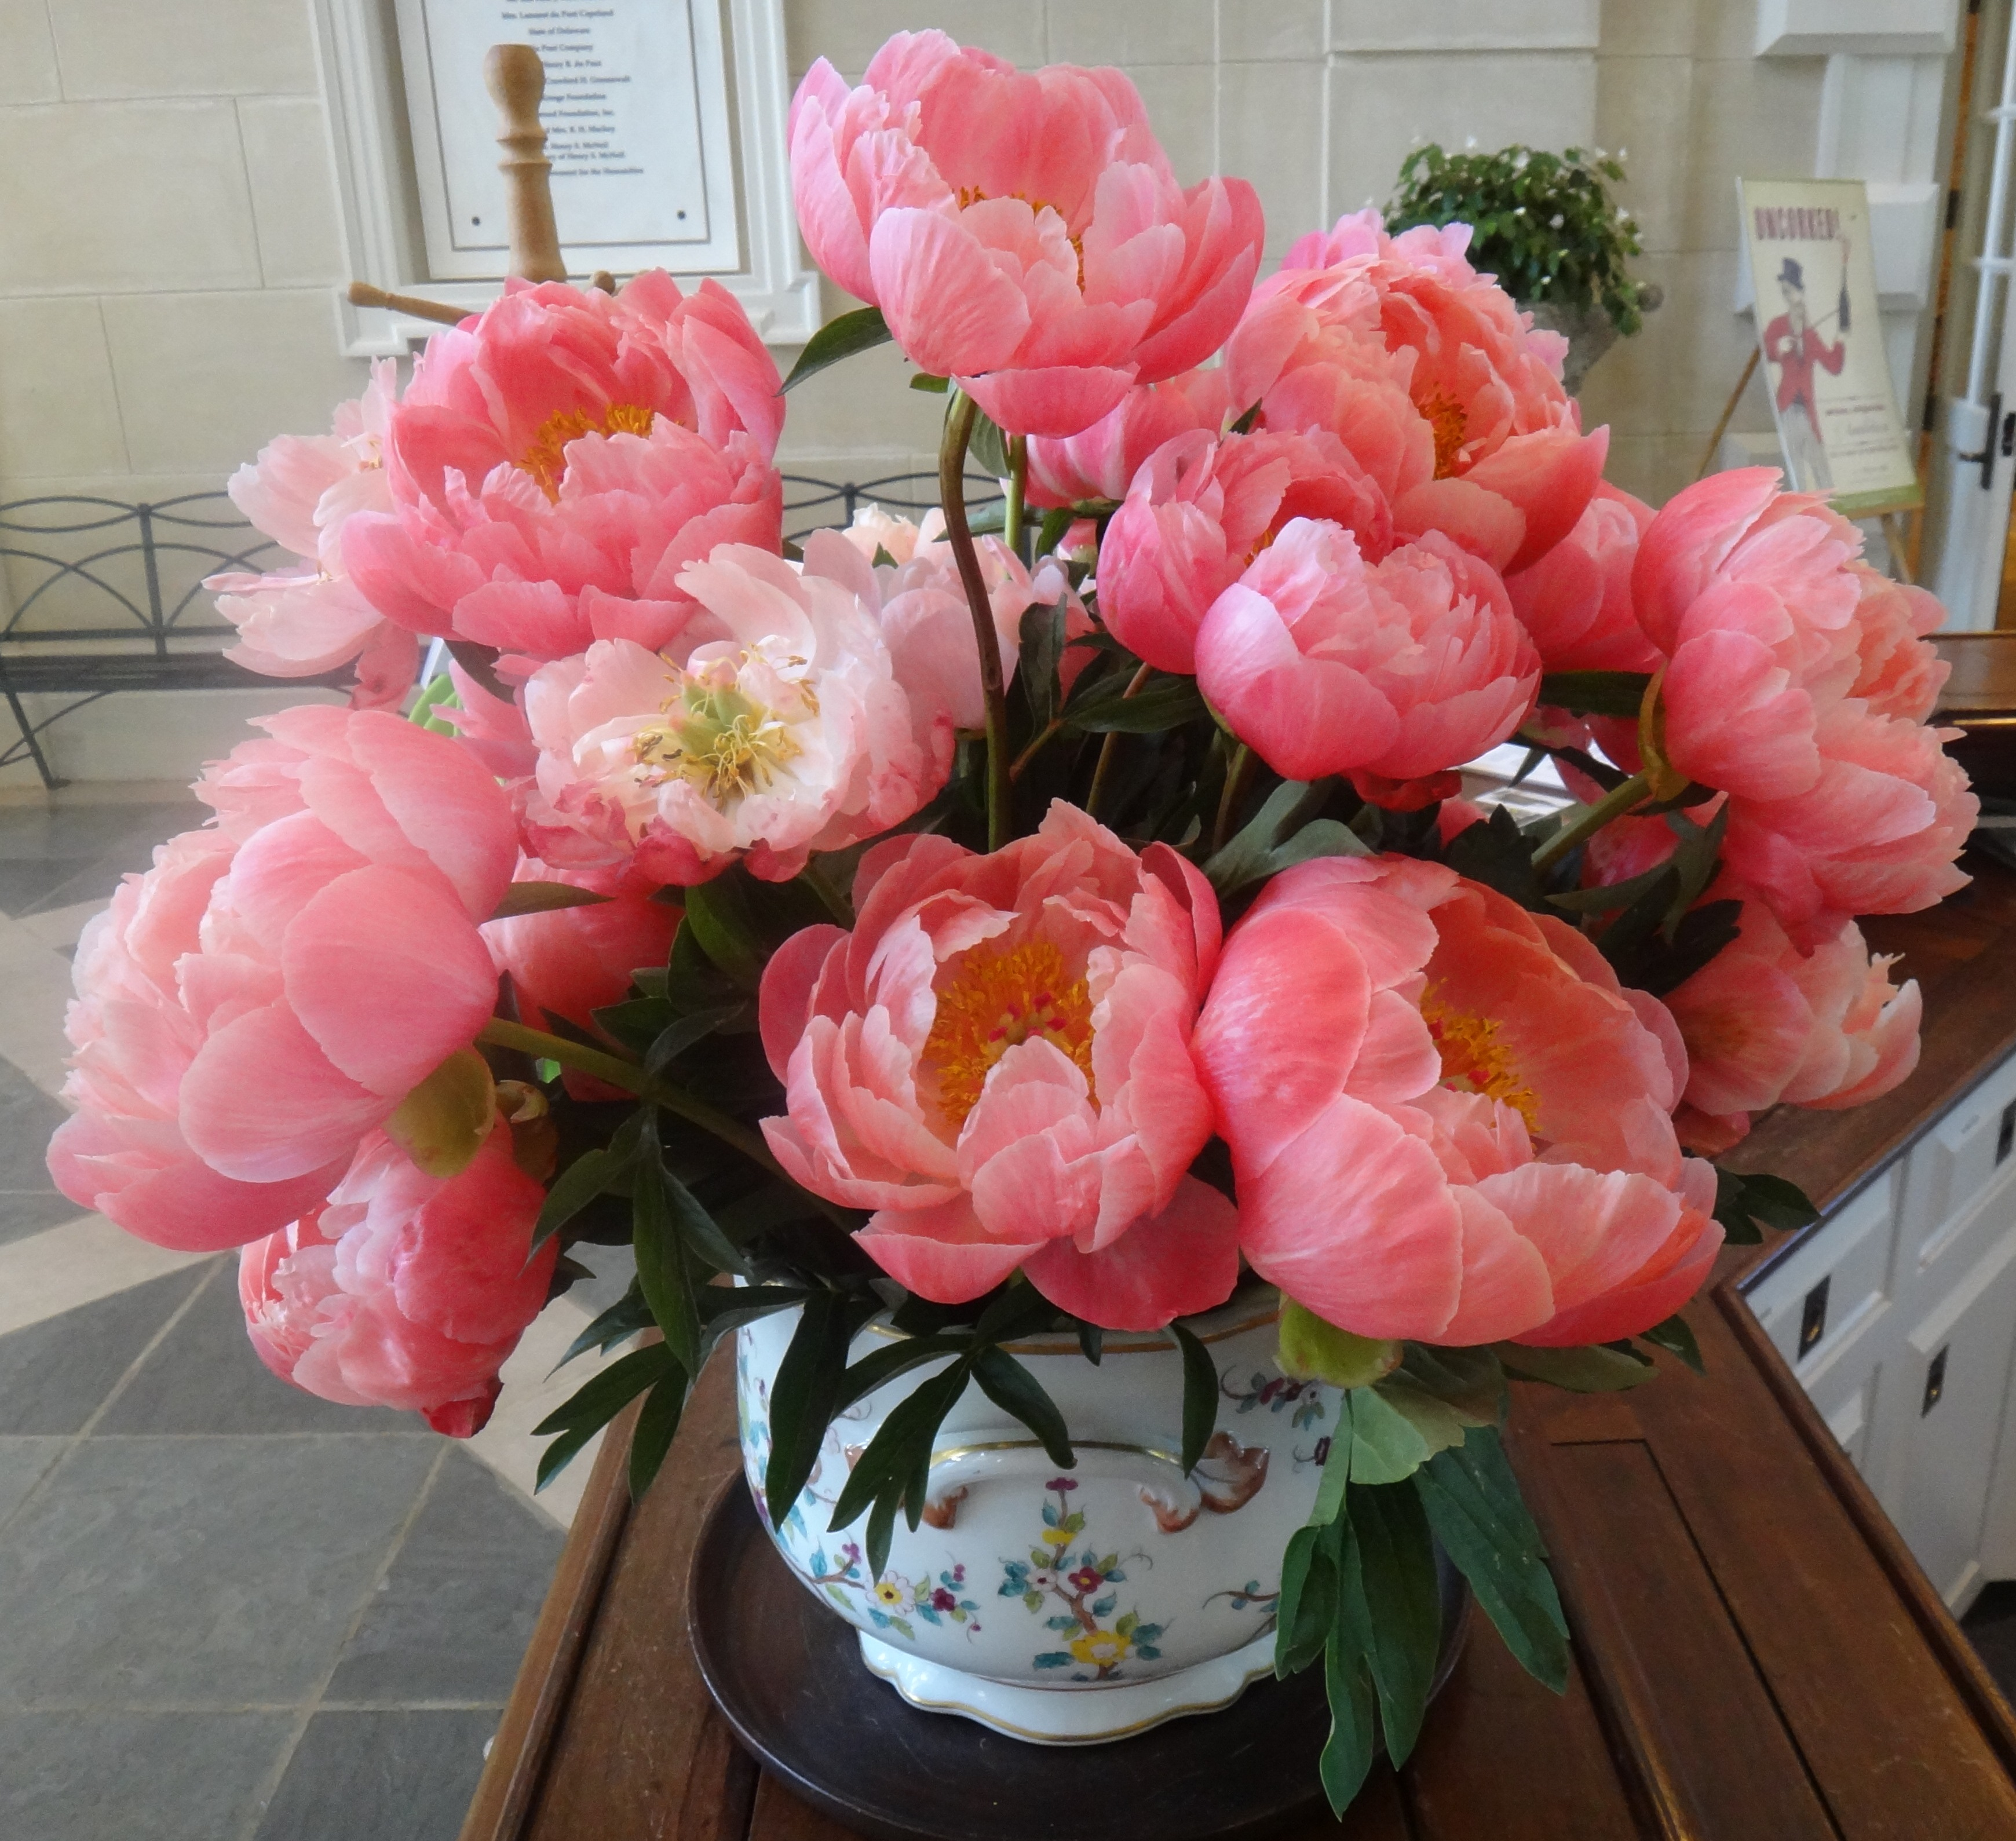 Coral Charm Peonies Grace Desk In Galleries Reception Area